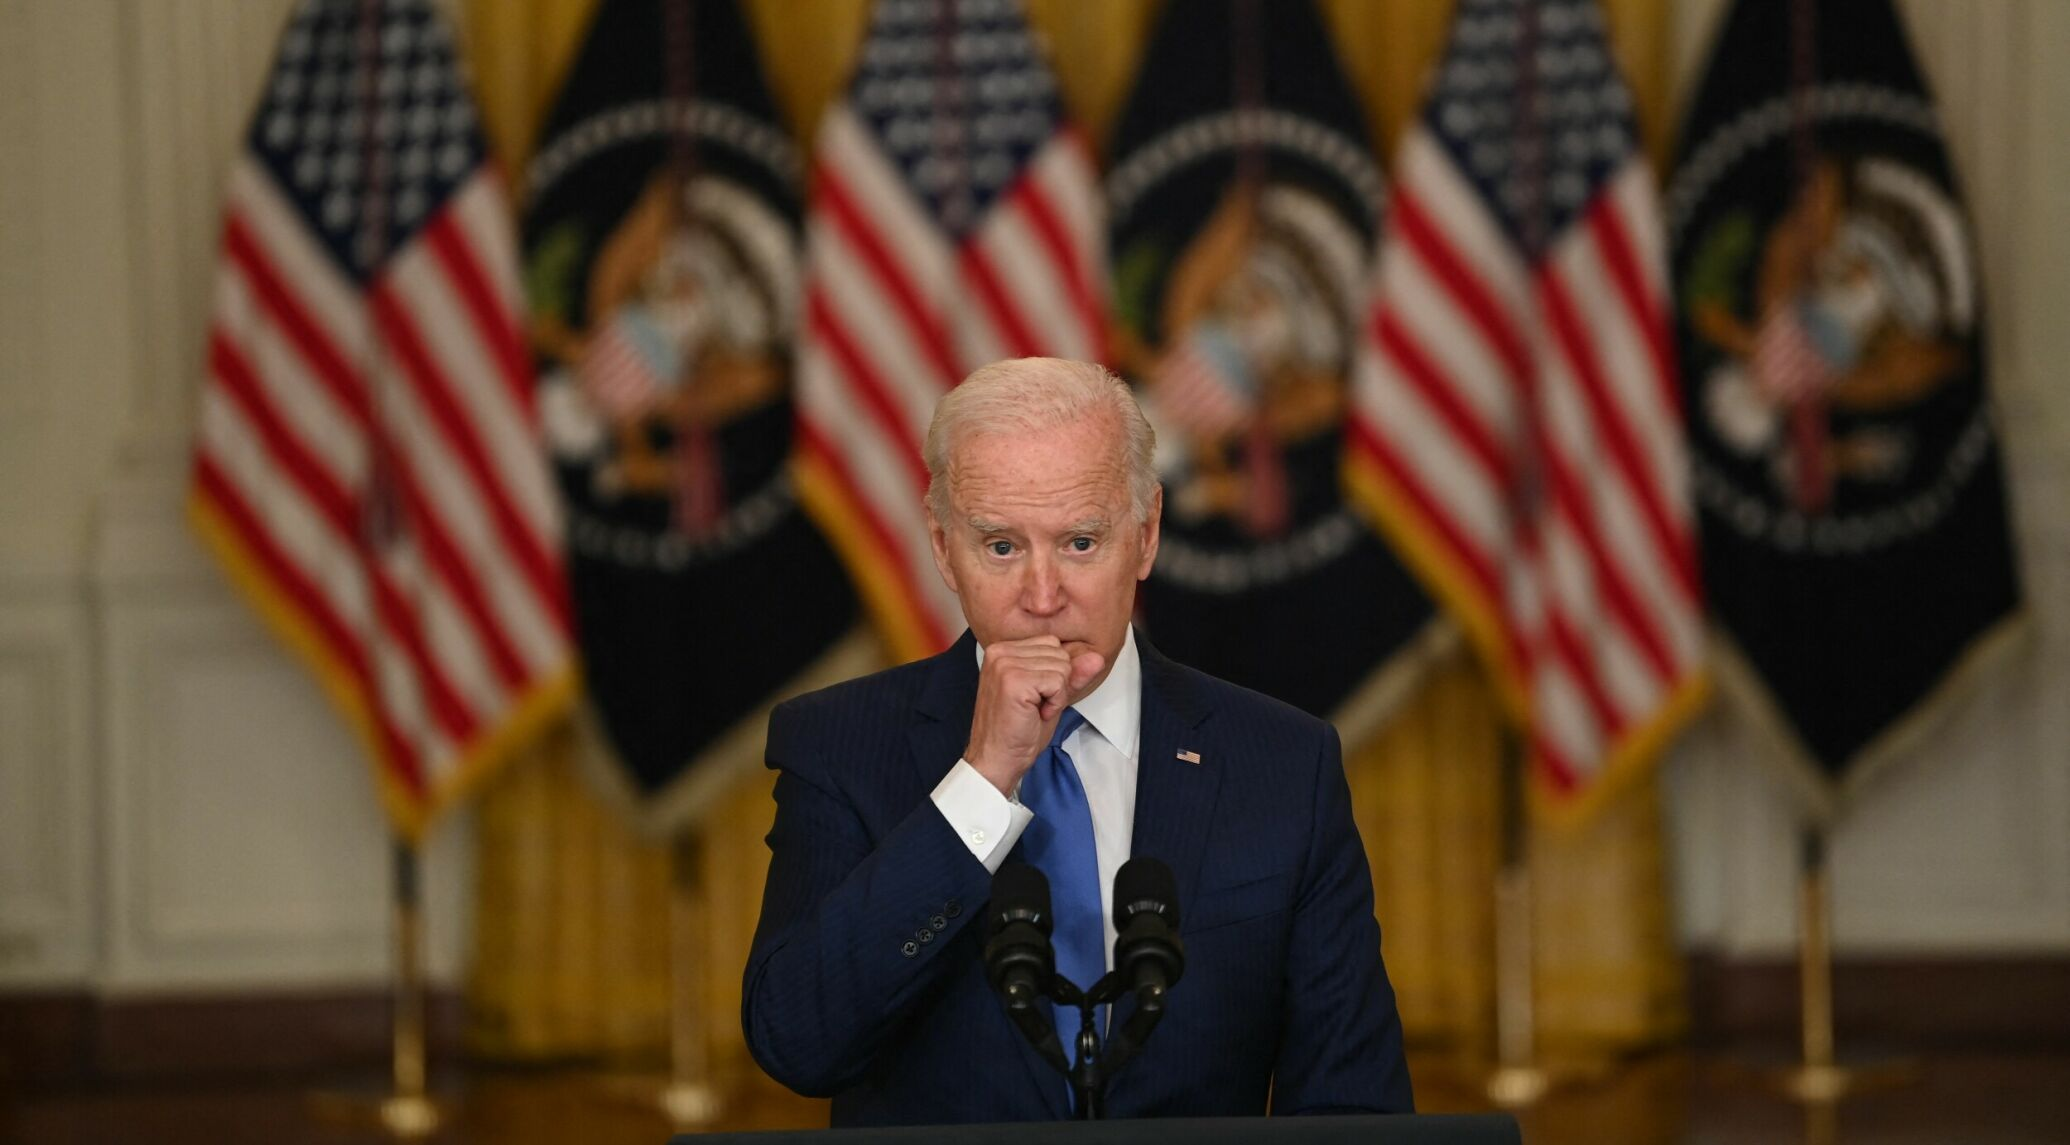 TOPSHOT - US President Joe Biden speaks about the economy and the middle class, in the East Room of the White House in Washington, DC, on September 16, 2021. (Photo by Brendan SMIALOWSKI / AFP)